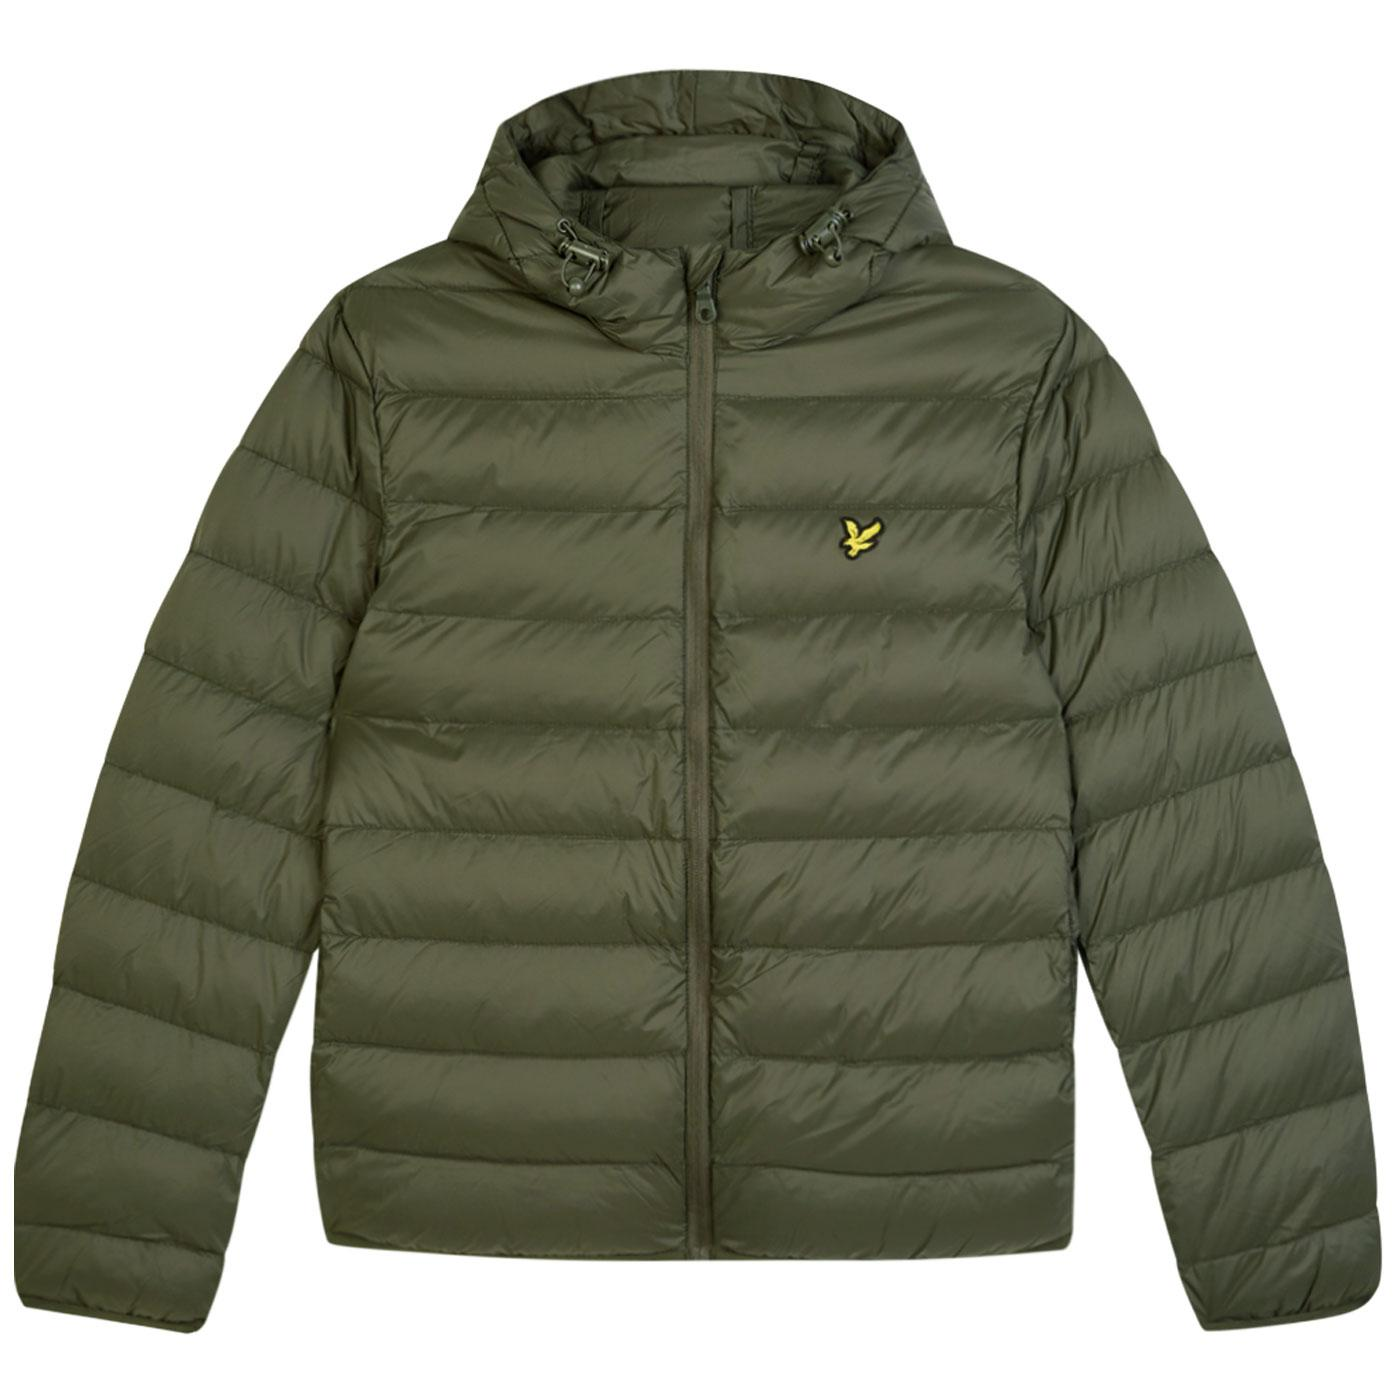 LYLE & SCOTT Retro Lightweight Puffer Jacket (WG)